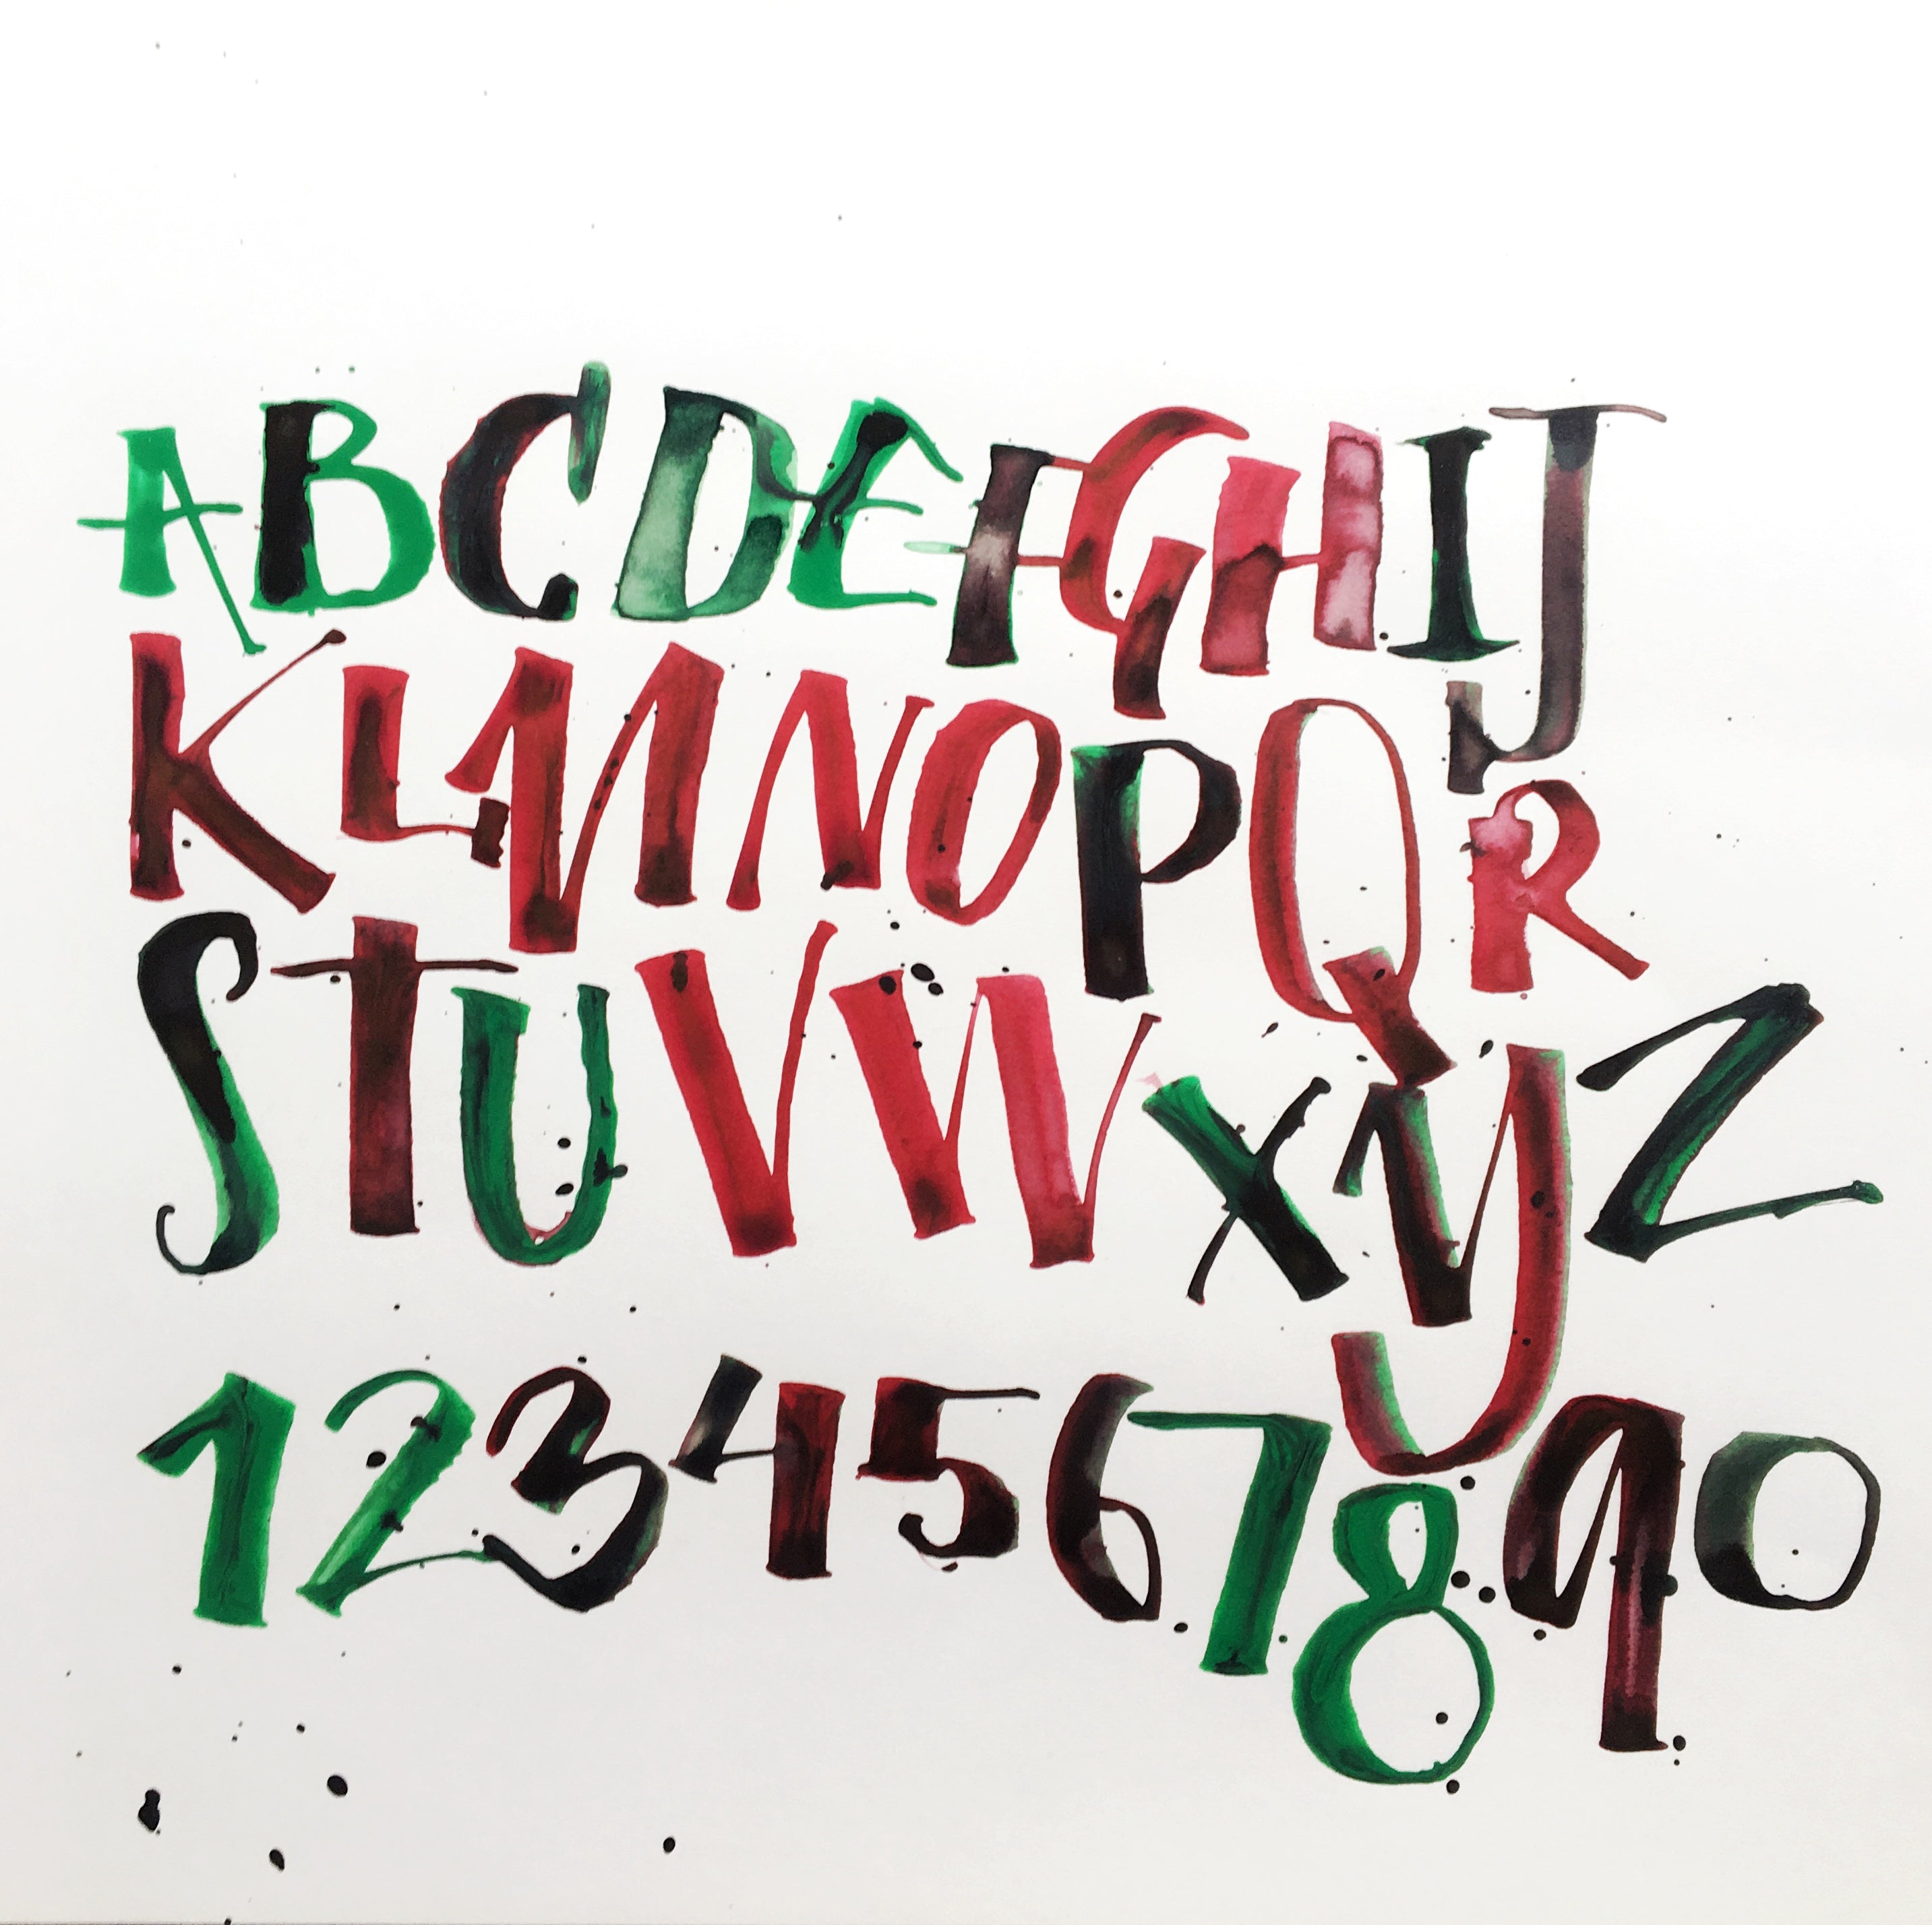 11/16 Calligraphy Workshop: Expressive Calligraphy with Folded Pens on Saturday November 16 at 2pm